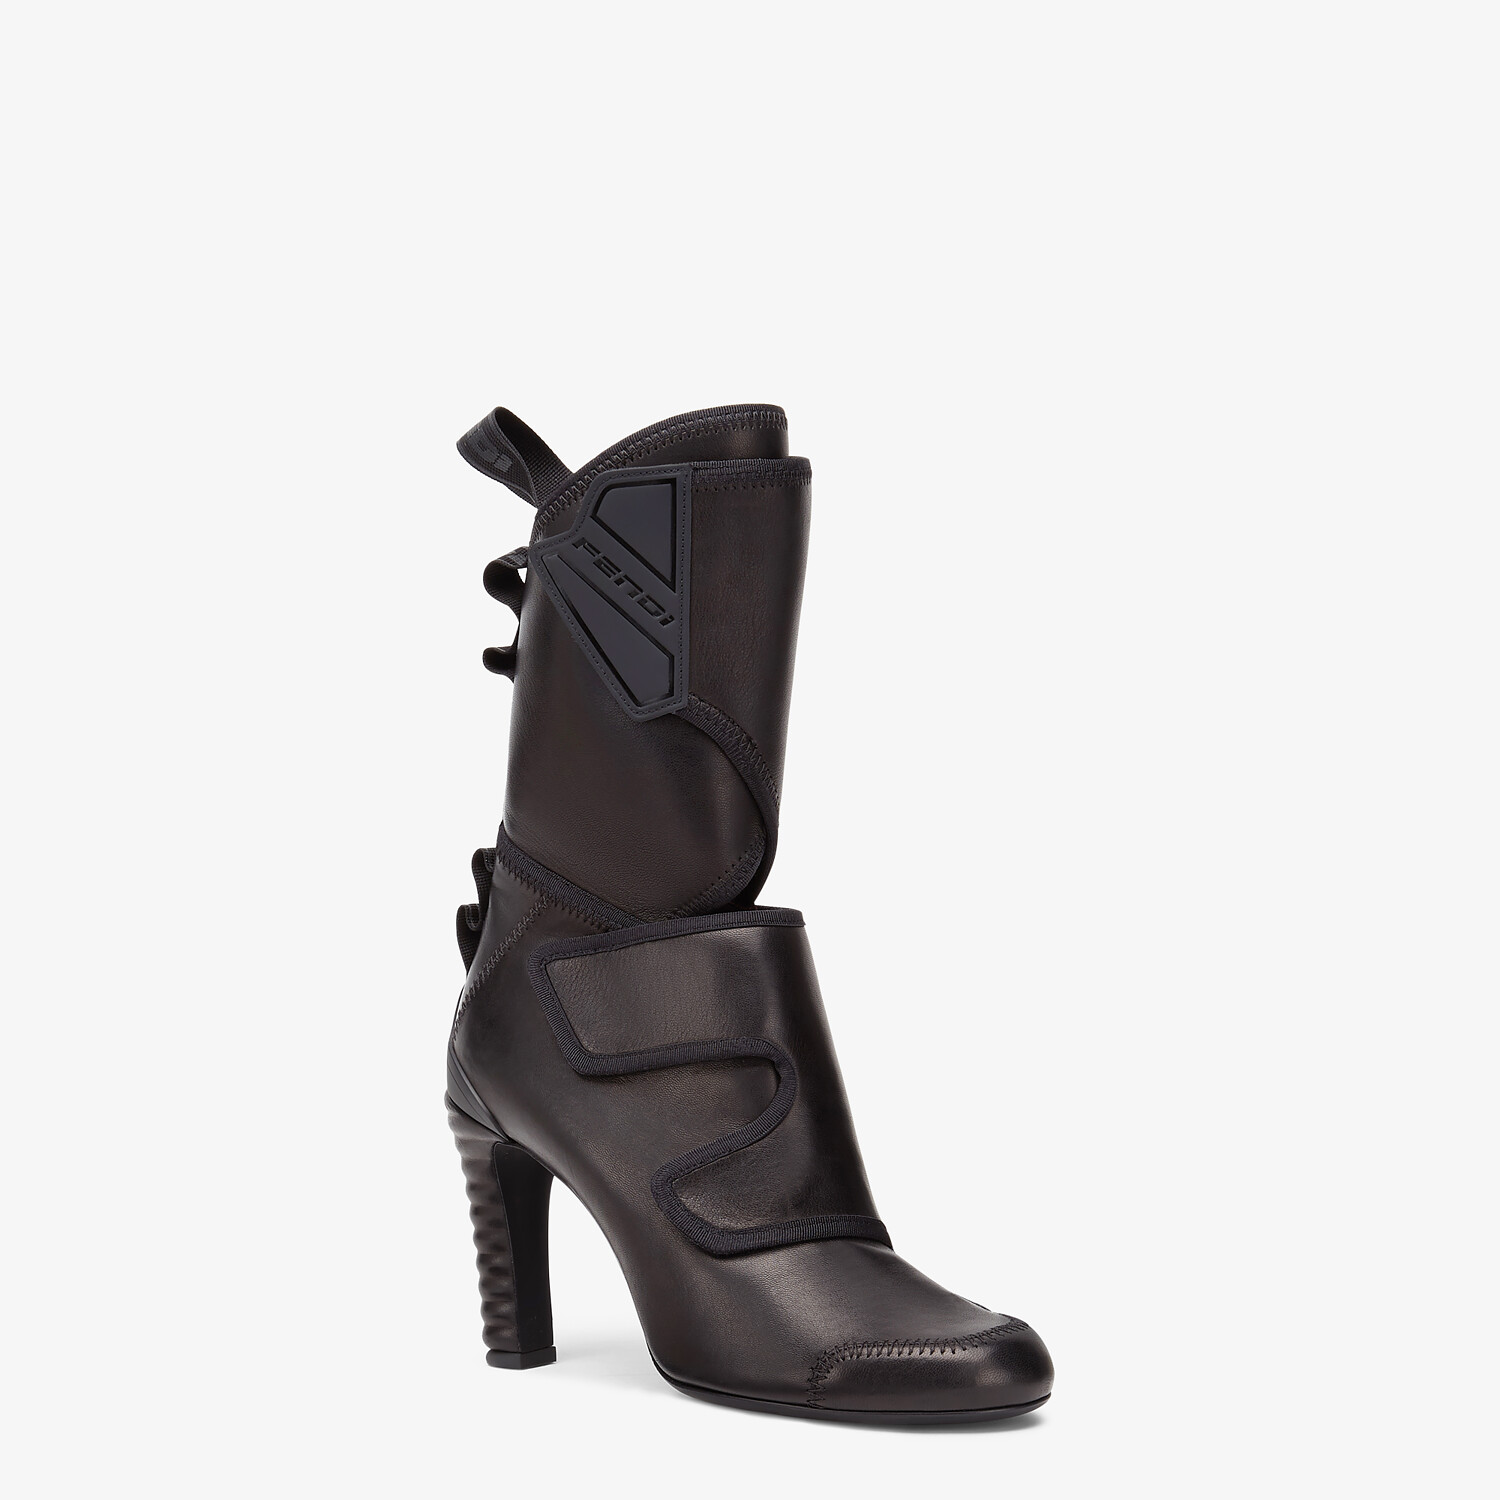 FENDI ANKLE BOOTS - Black leather Promenade Booties - view 2 detail